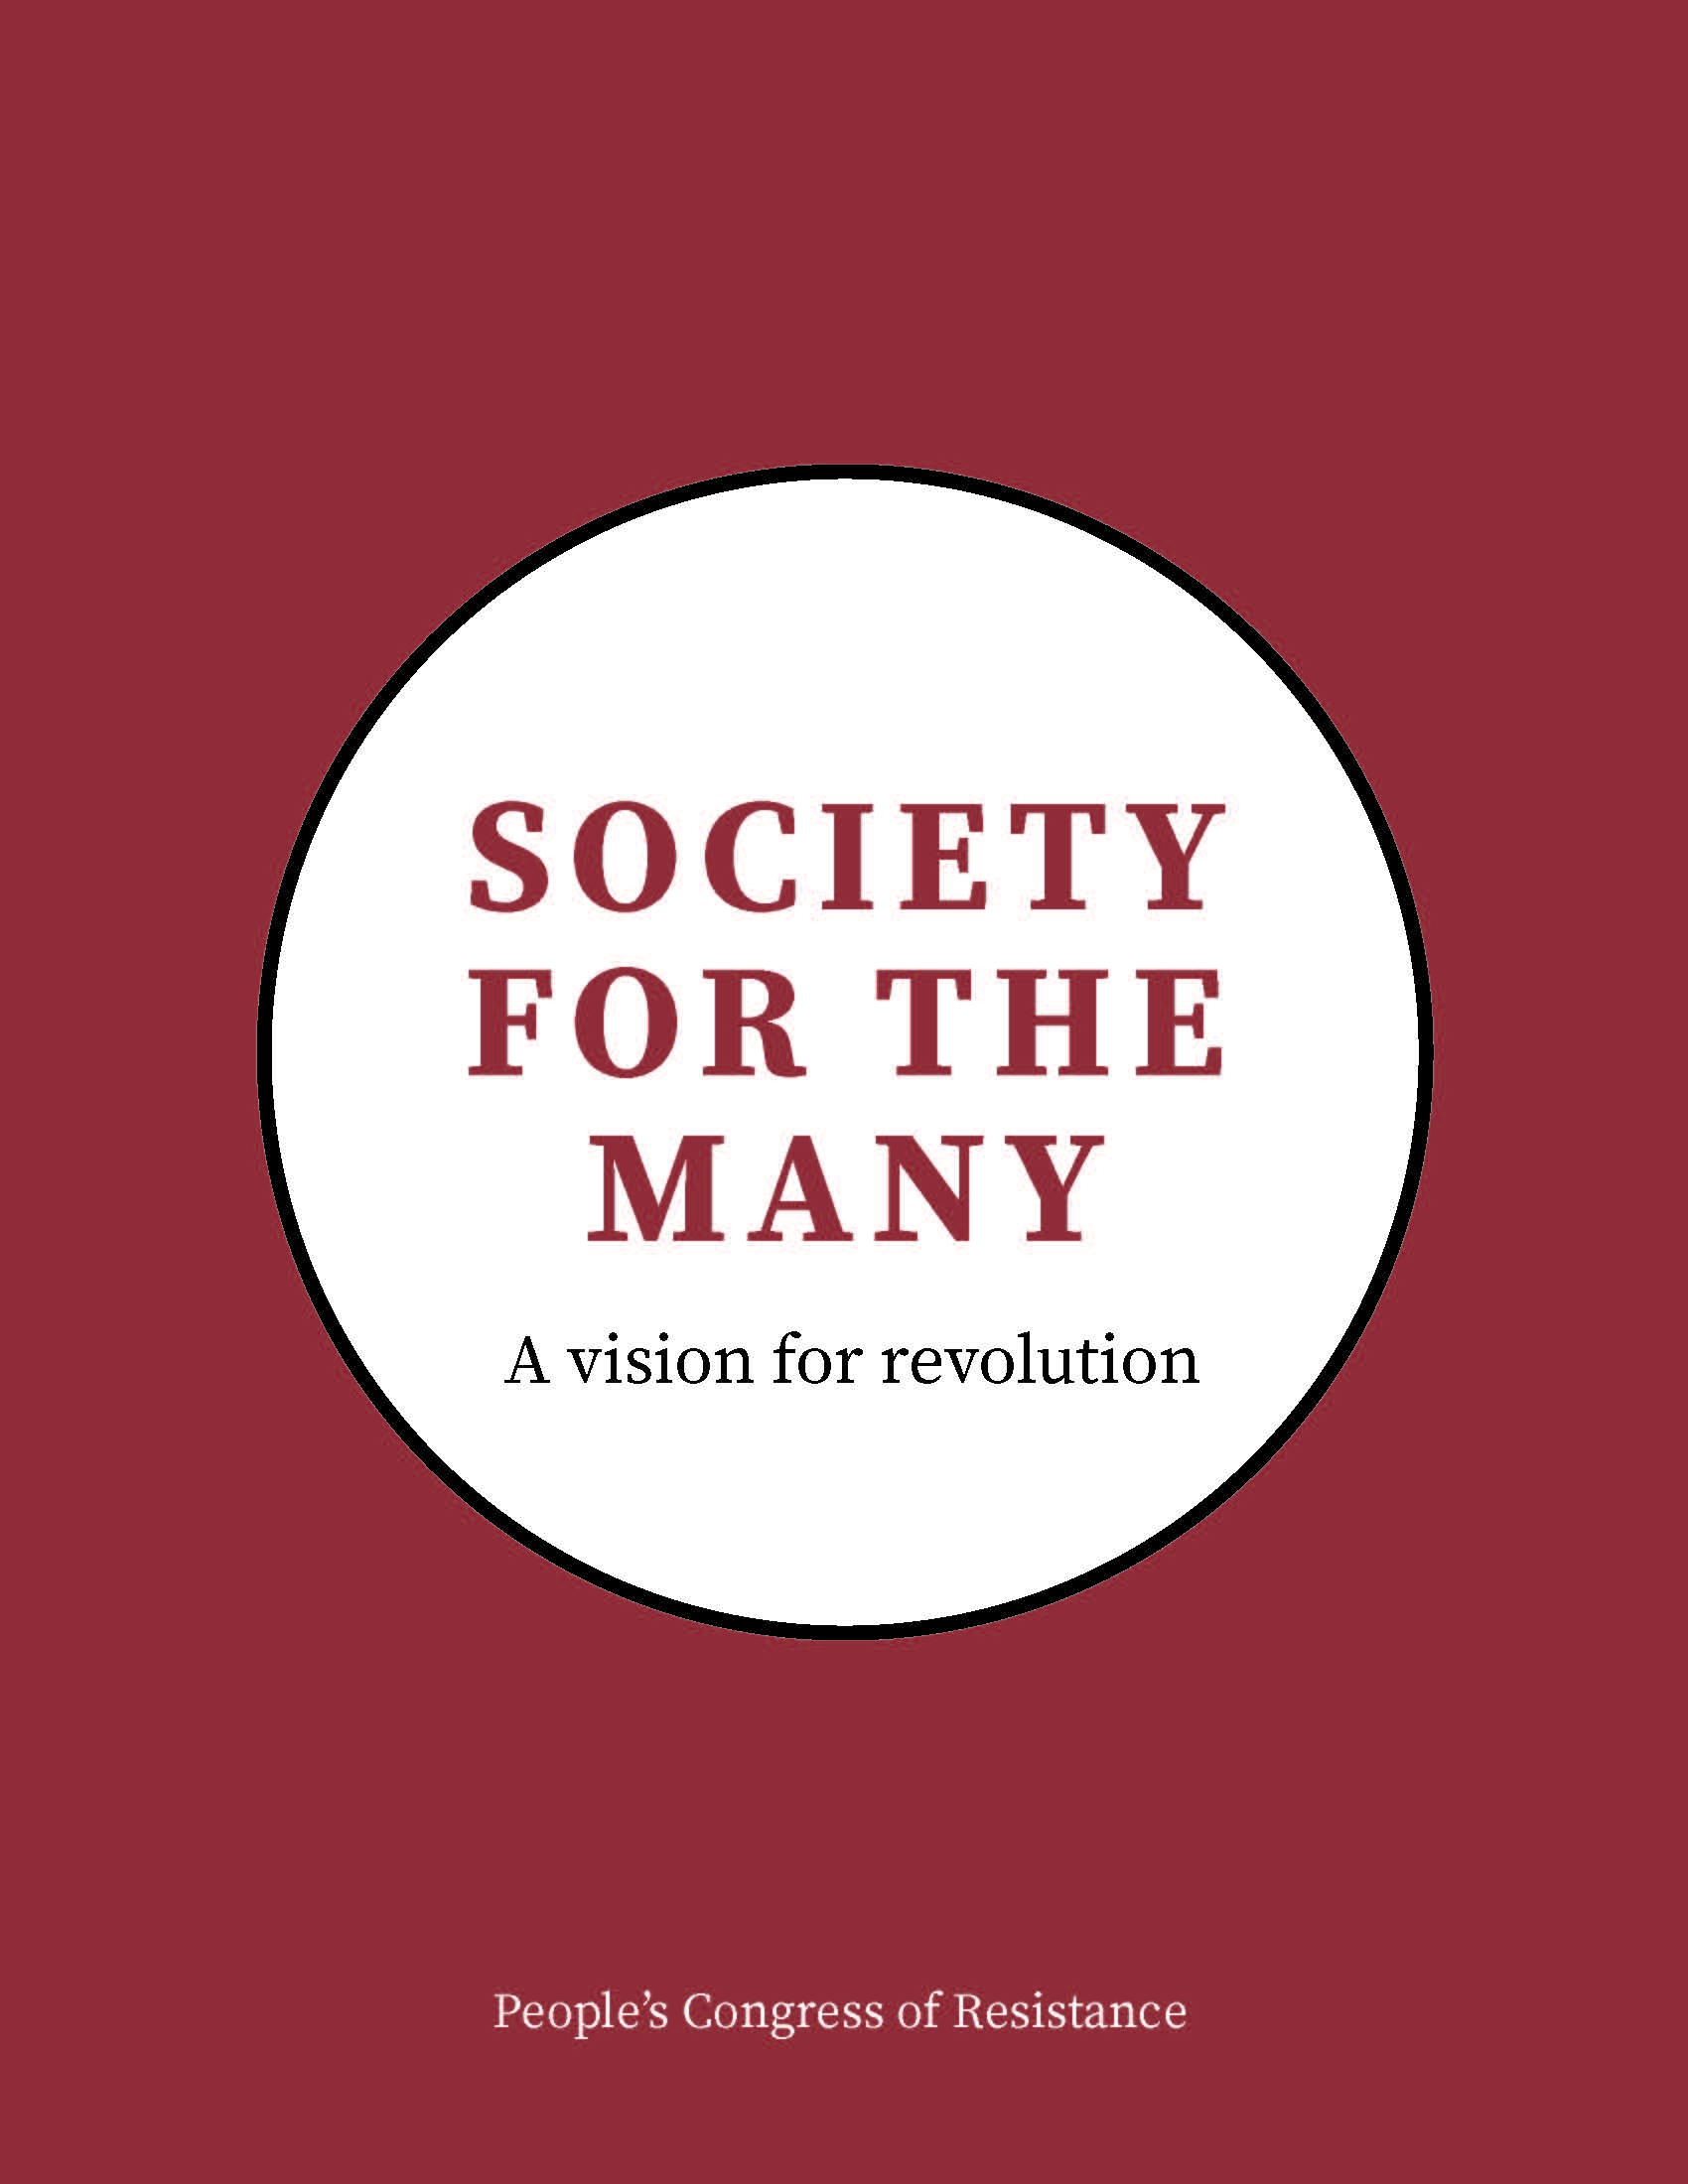 society_for_the_many_-_a_vision_for_revolution_Page_01.jpg